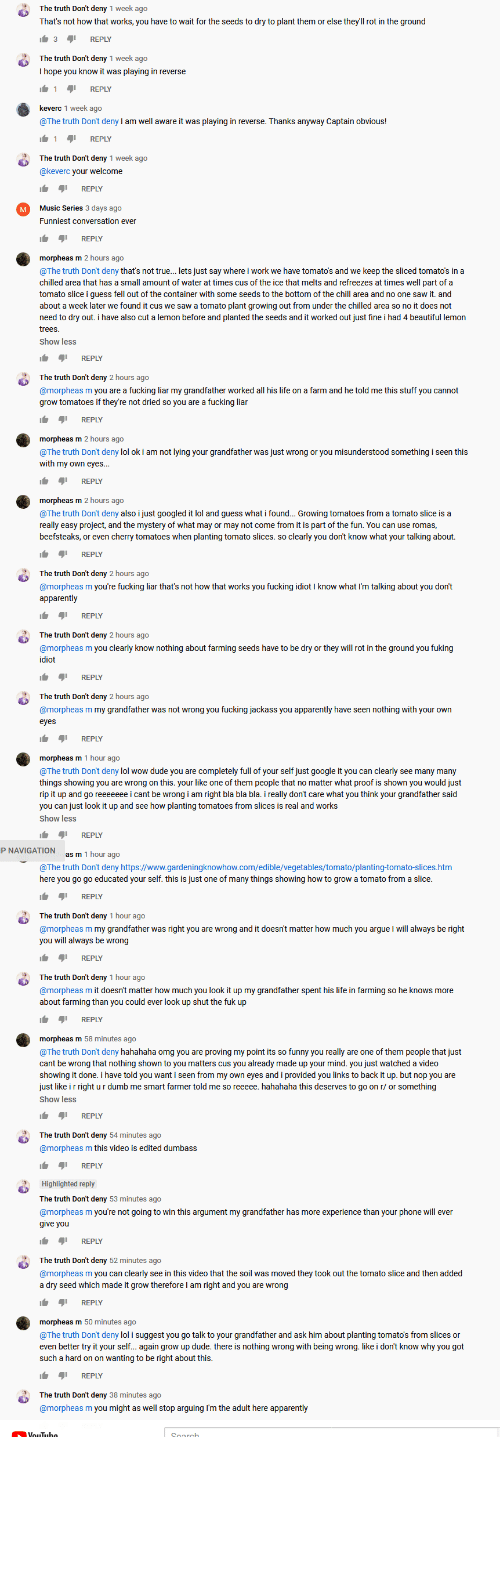 "deny: me vs ""the truth don't deny"" on a you tube video. he just cant be wrong."